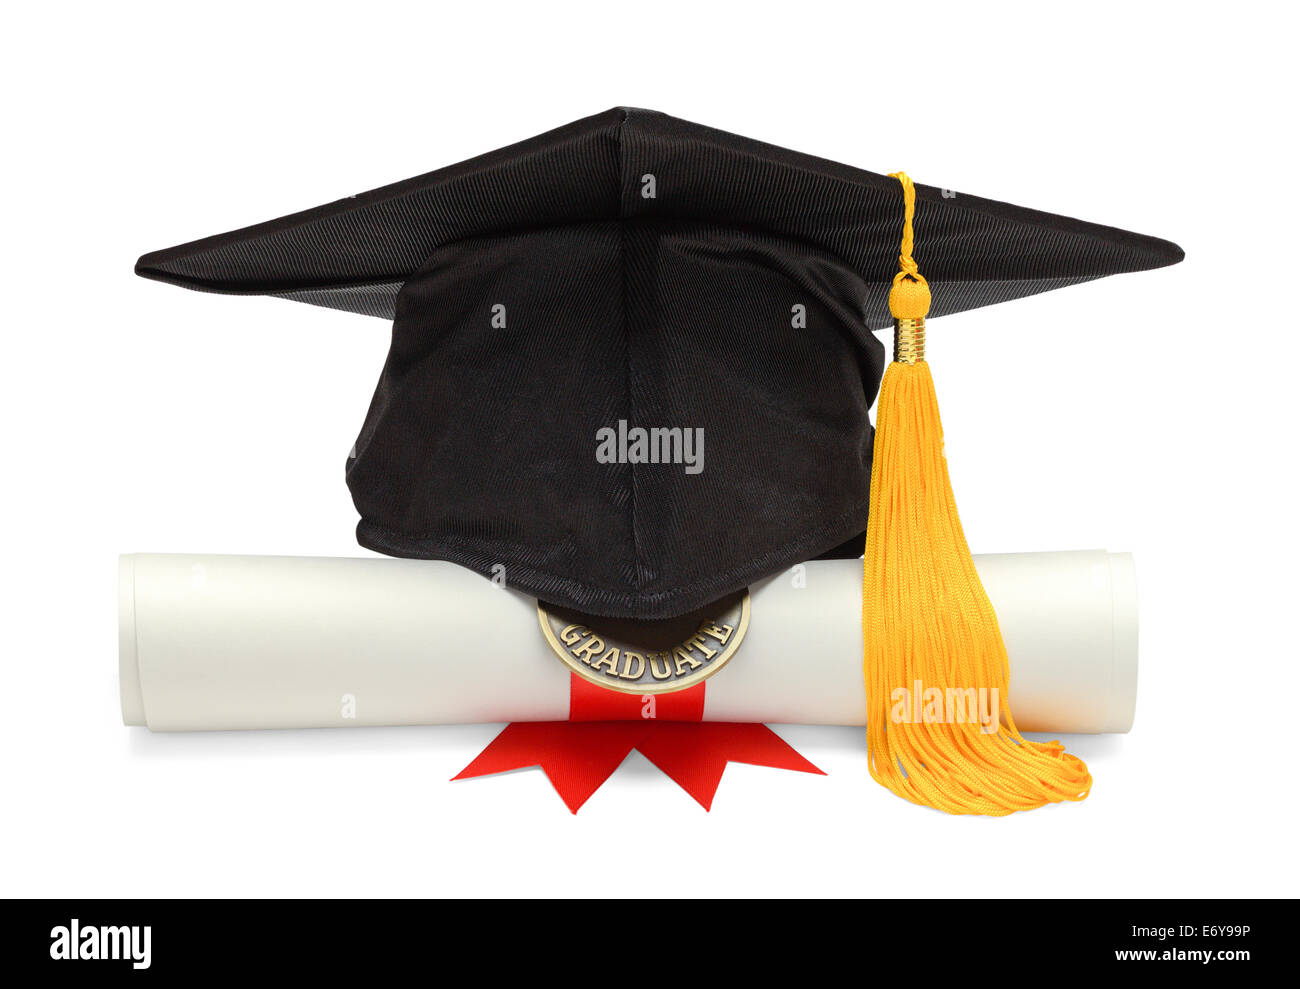 Graduation Hat and Diploma Front View Isolated on White Background. - Stock Image